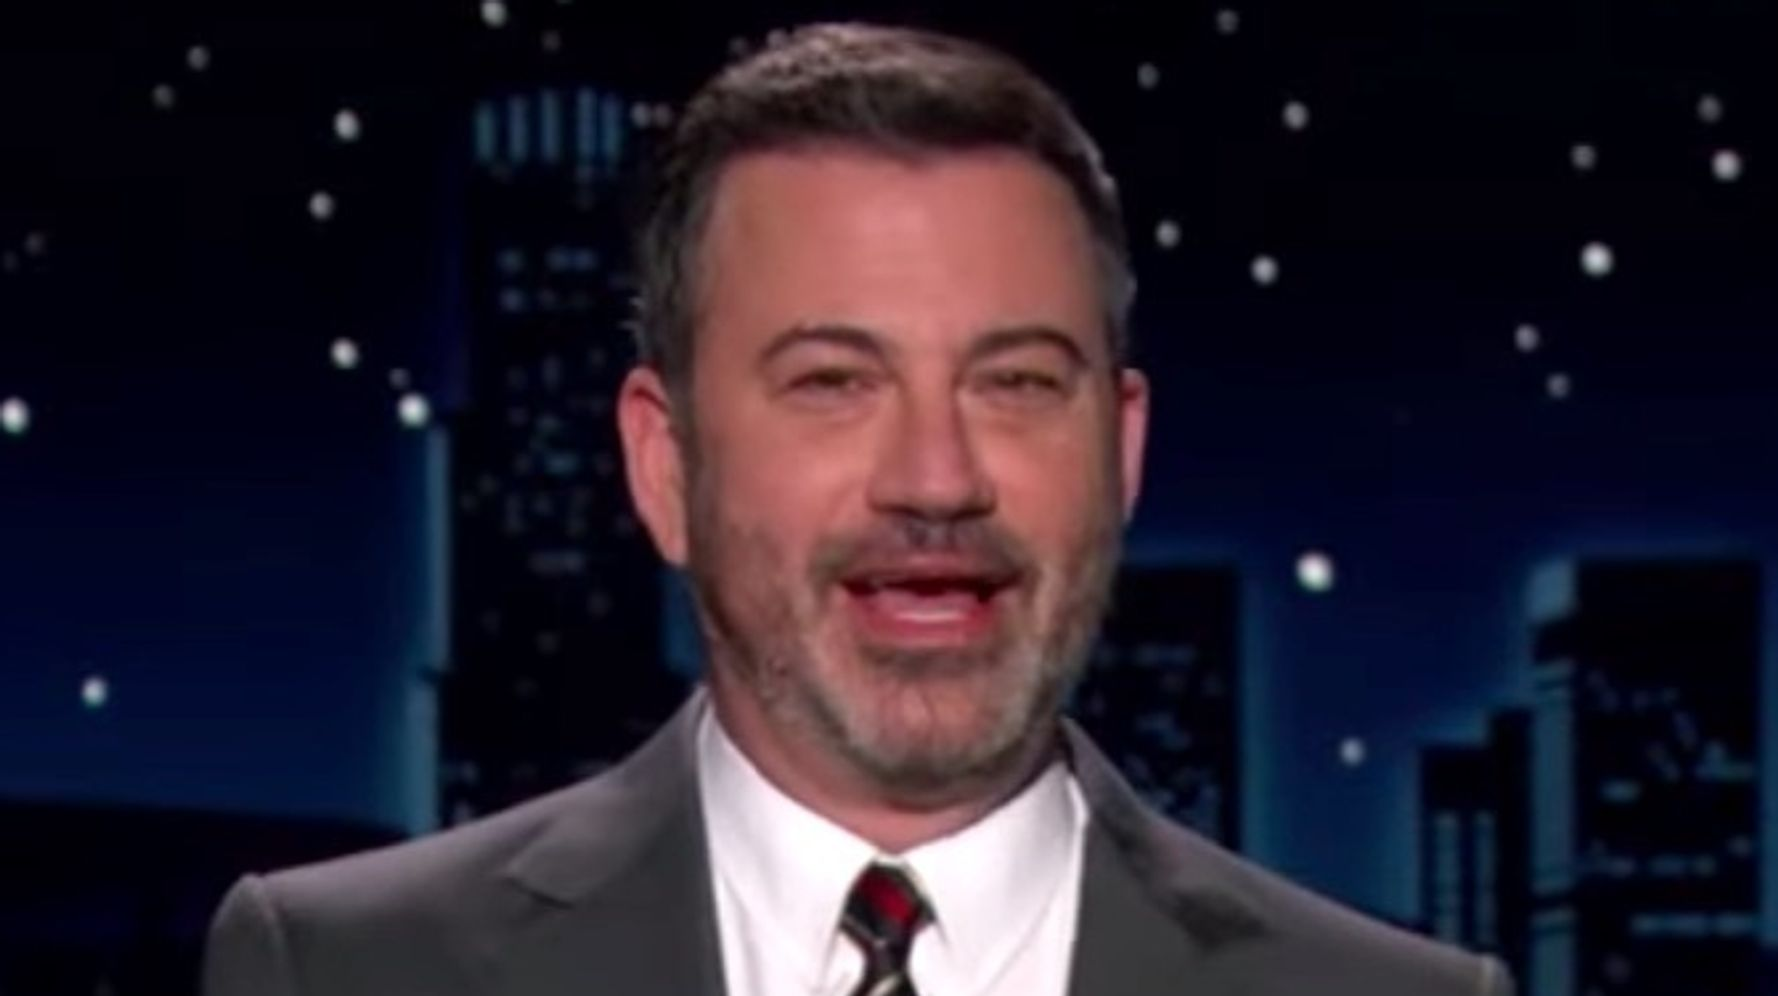 Jimmy Kimmel Gives Trump Supporters An Uncomfortable Truth About The Ex-President